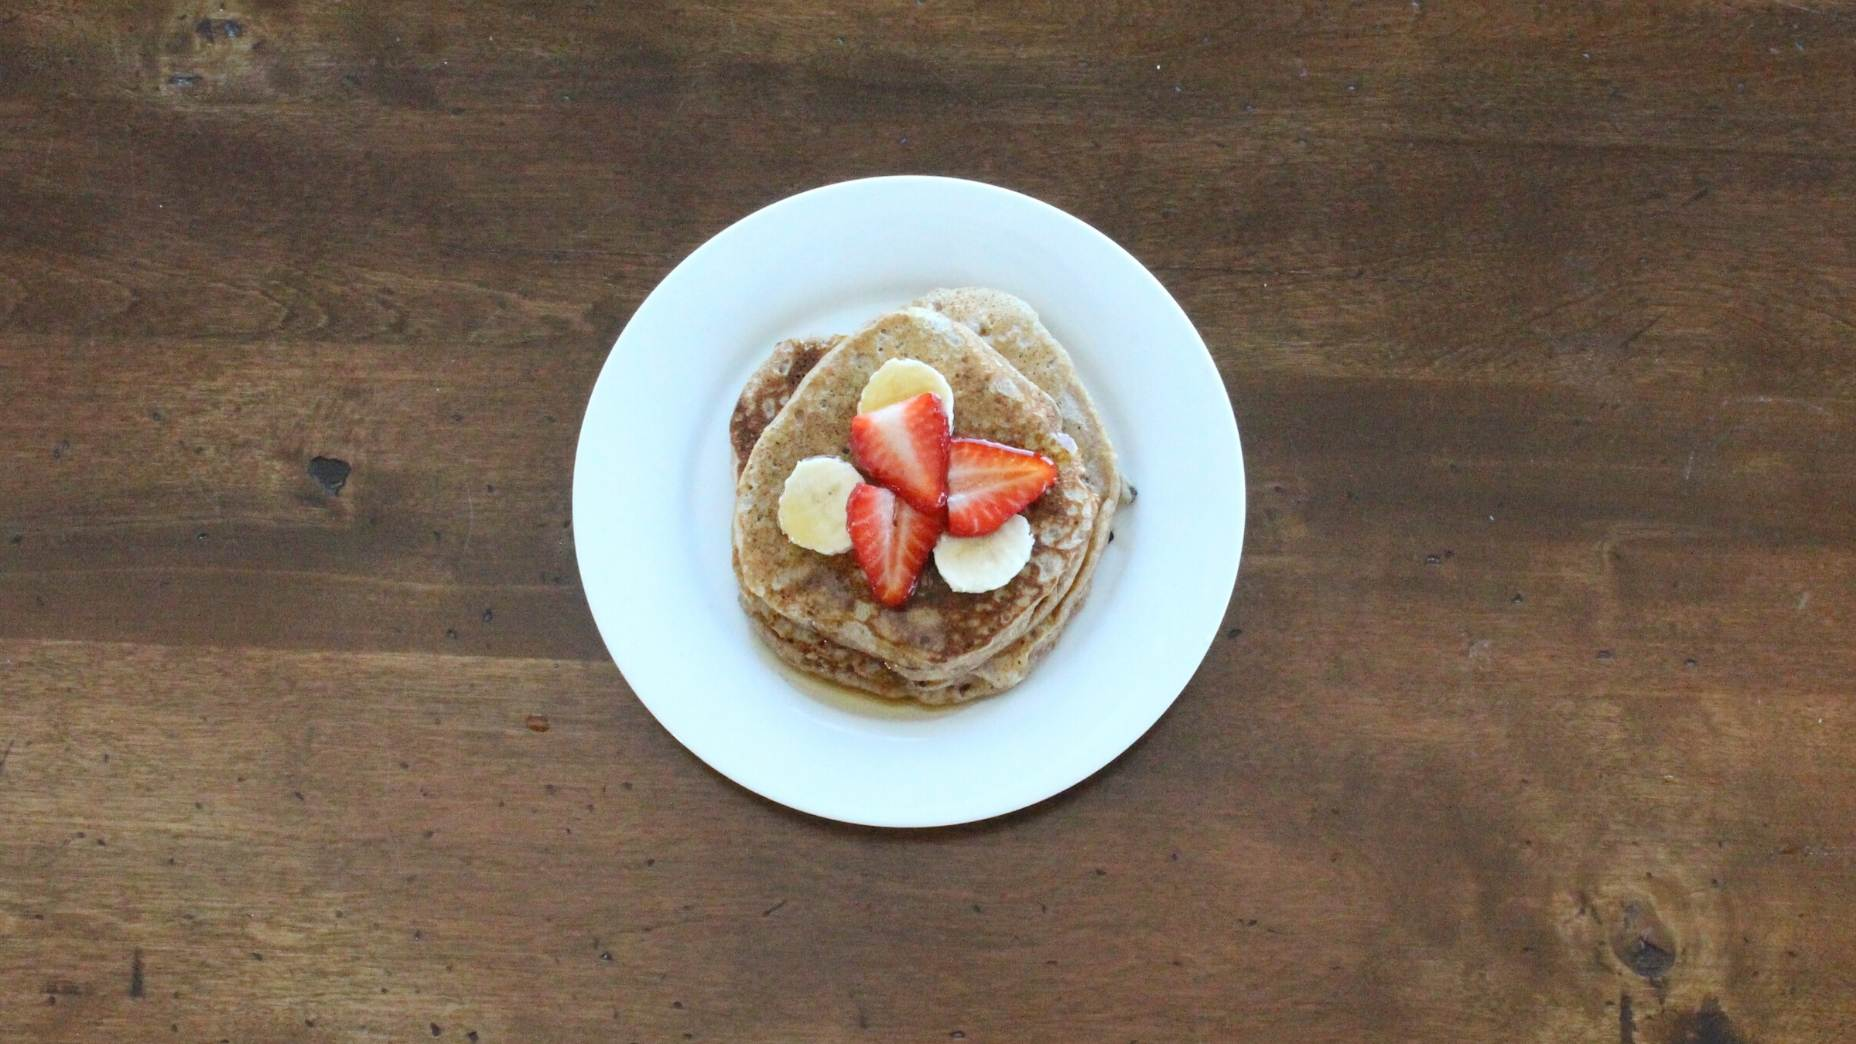 iron fortified pancakes for baby led weaning.